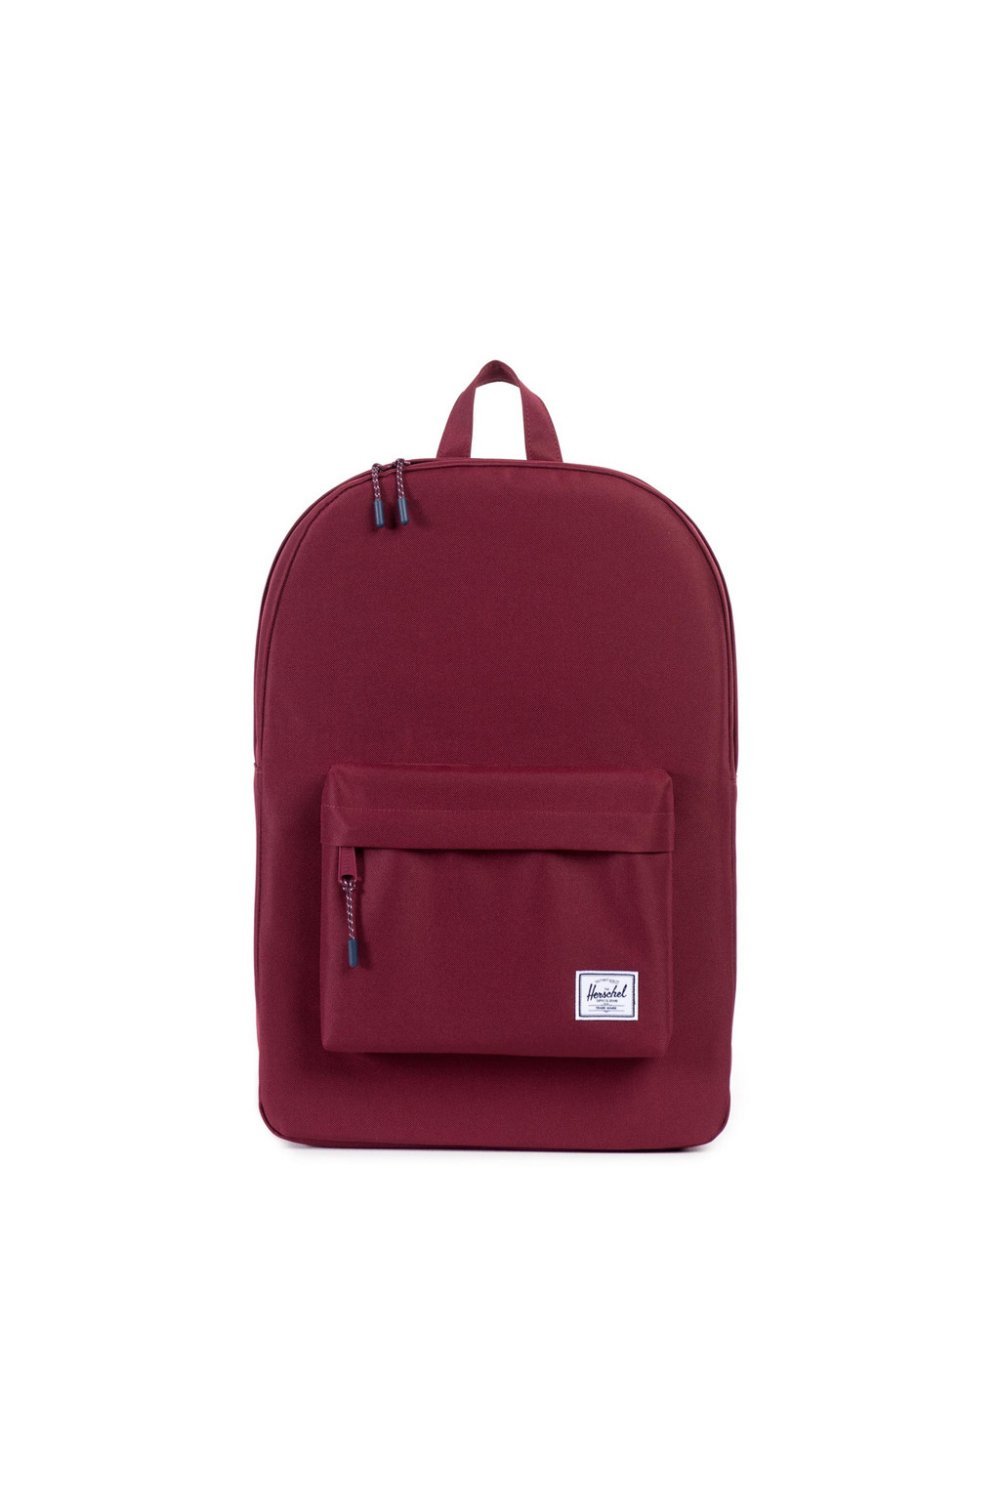 Herschel Supply Co Classic Backpack (Windsor Wine) - Accessories ... c4379ead239a4